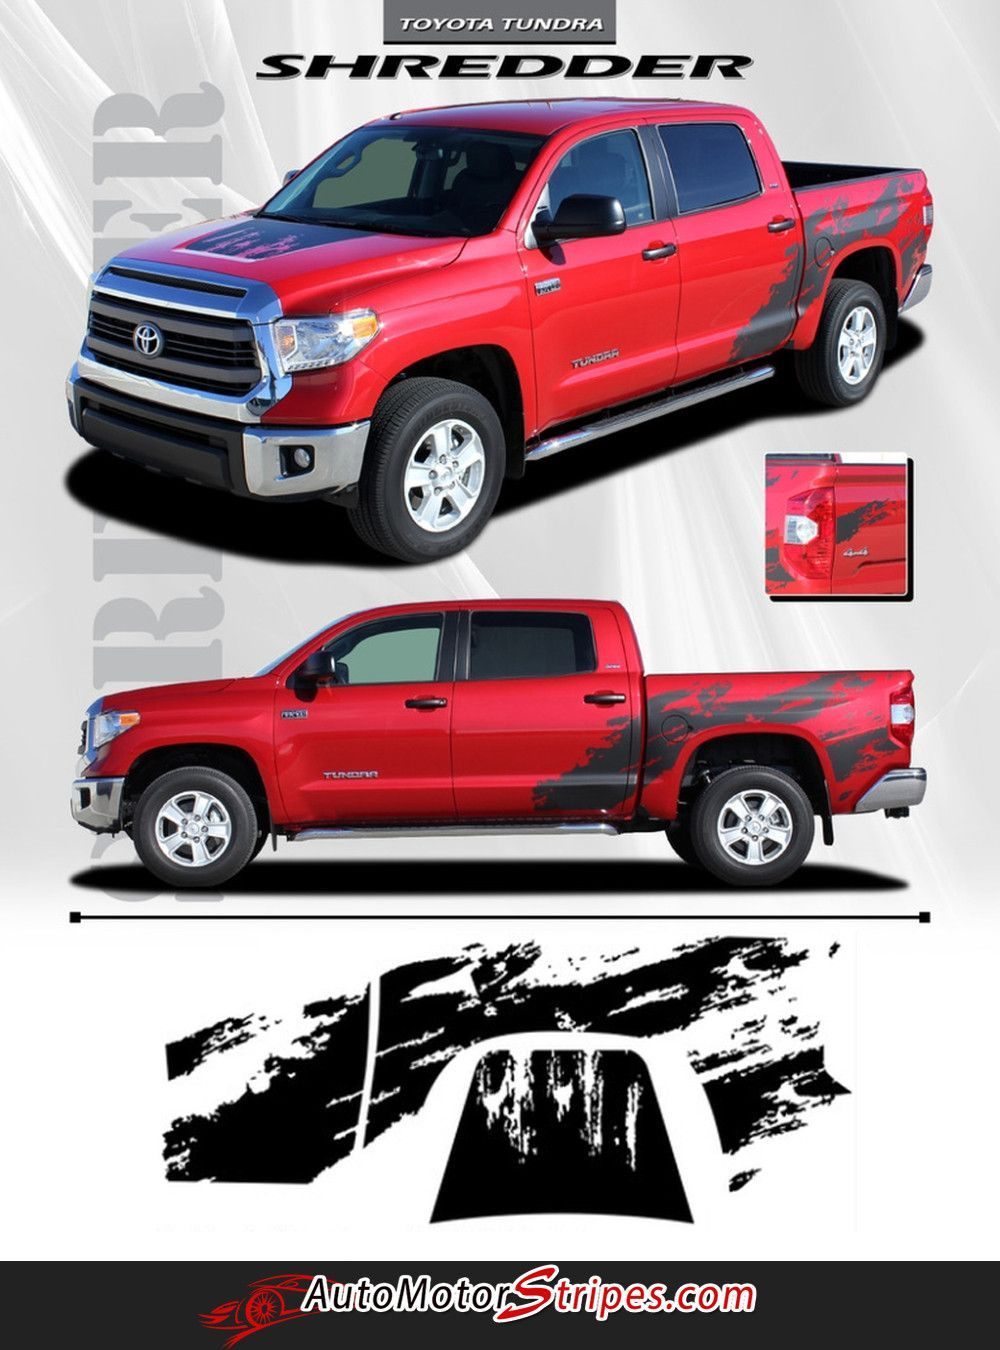 Toyota Tundra Shredder Hood And Truck Bed Decal M Vinyl - Decal graphics